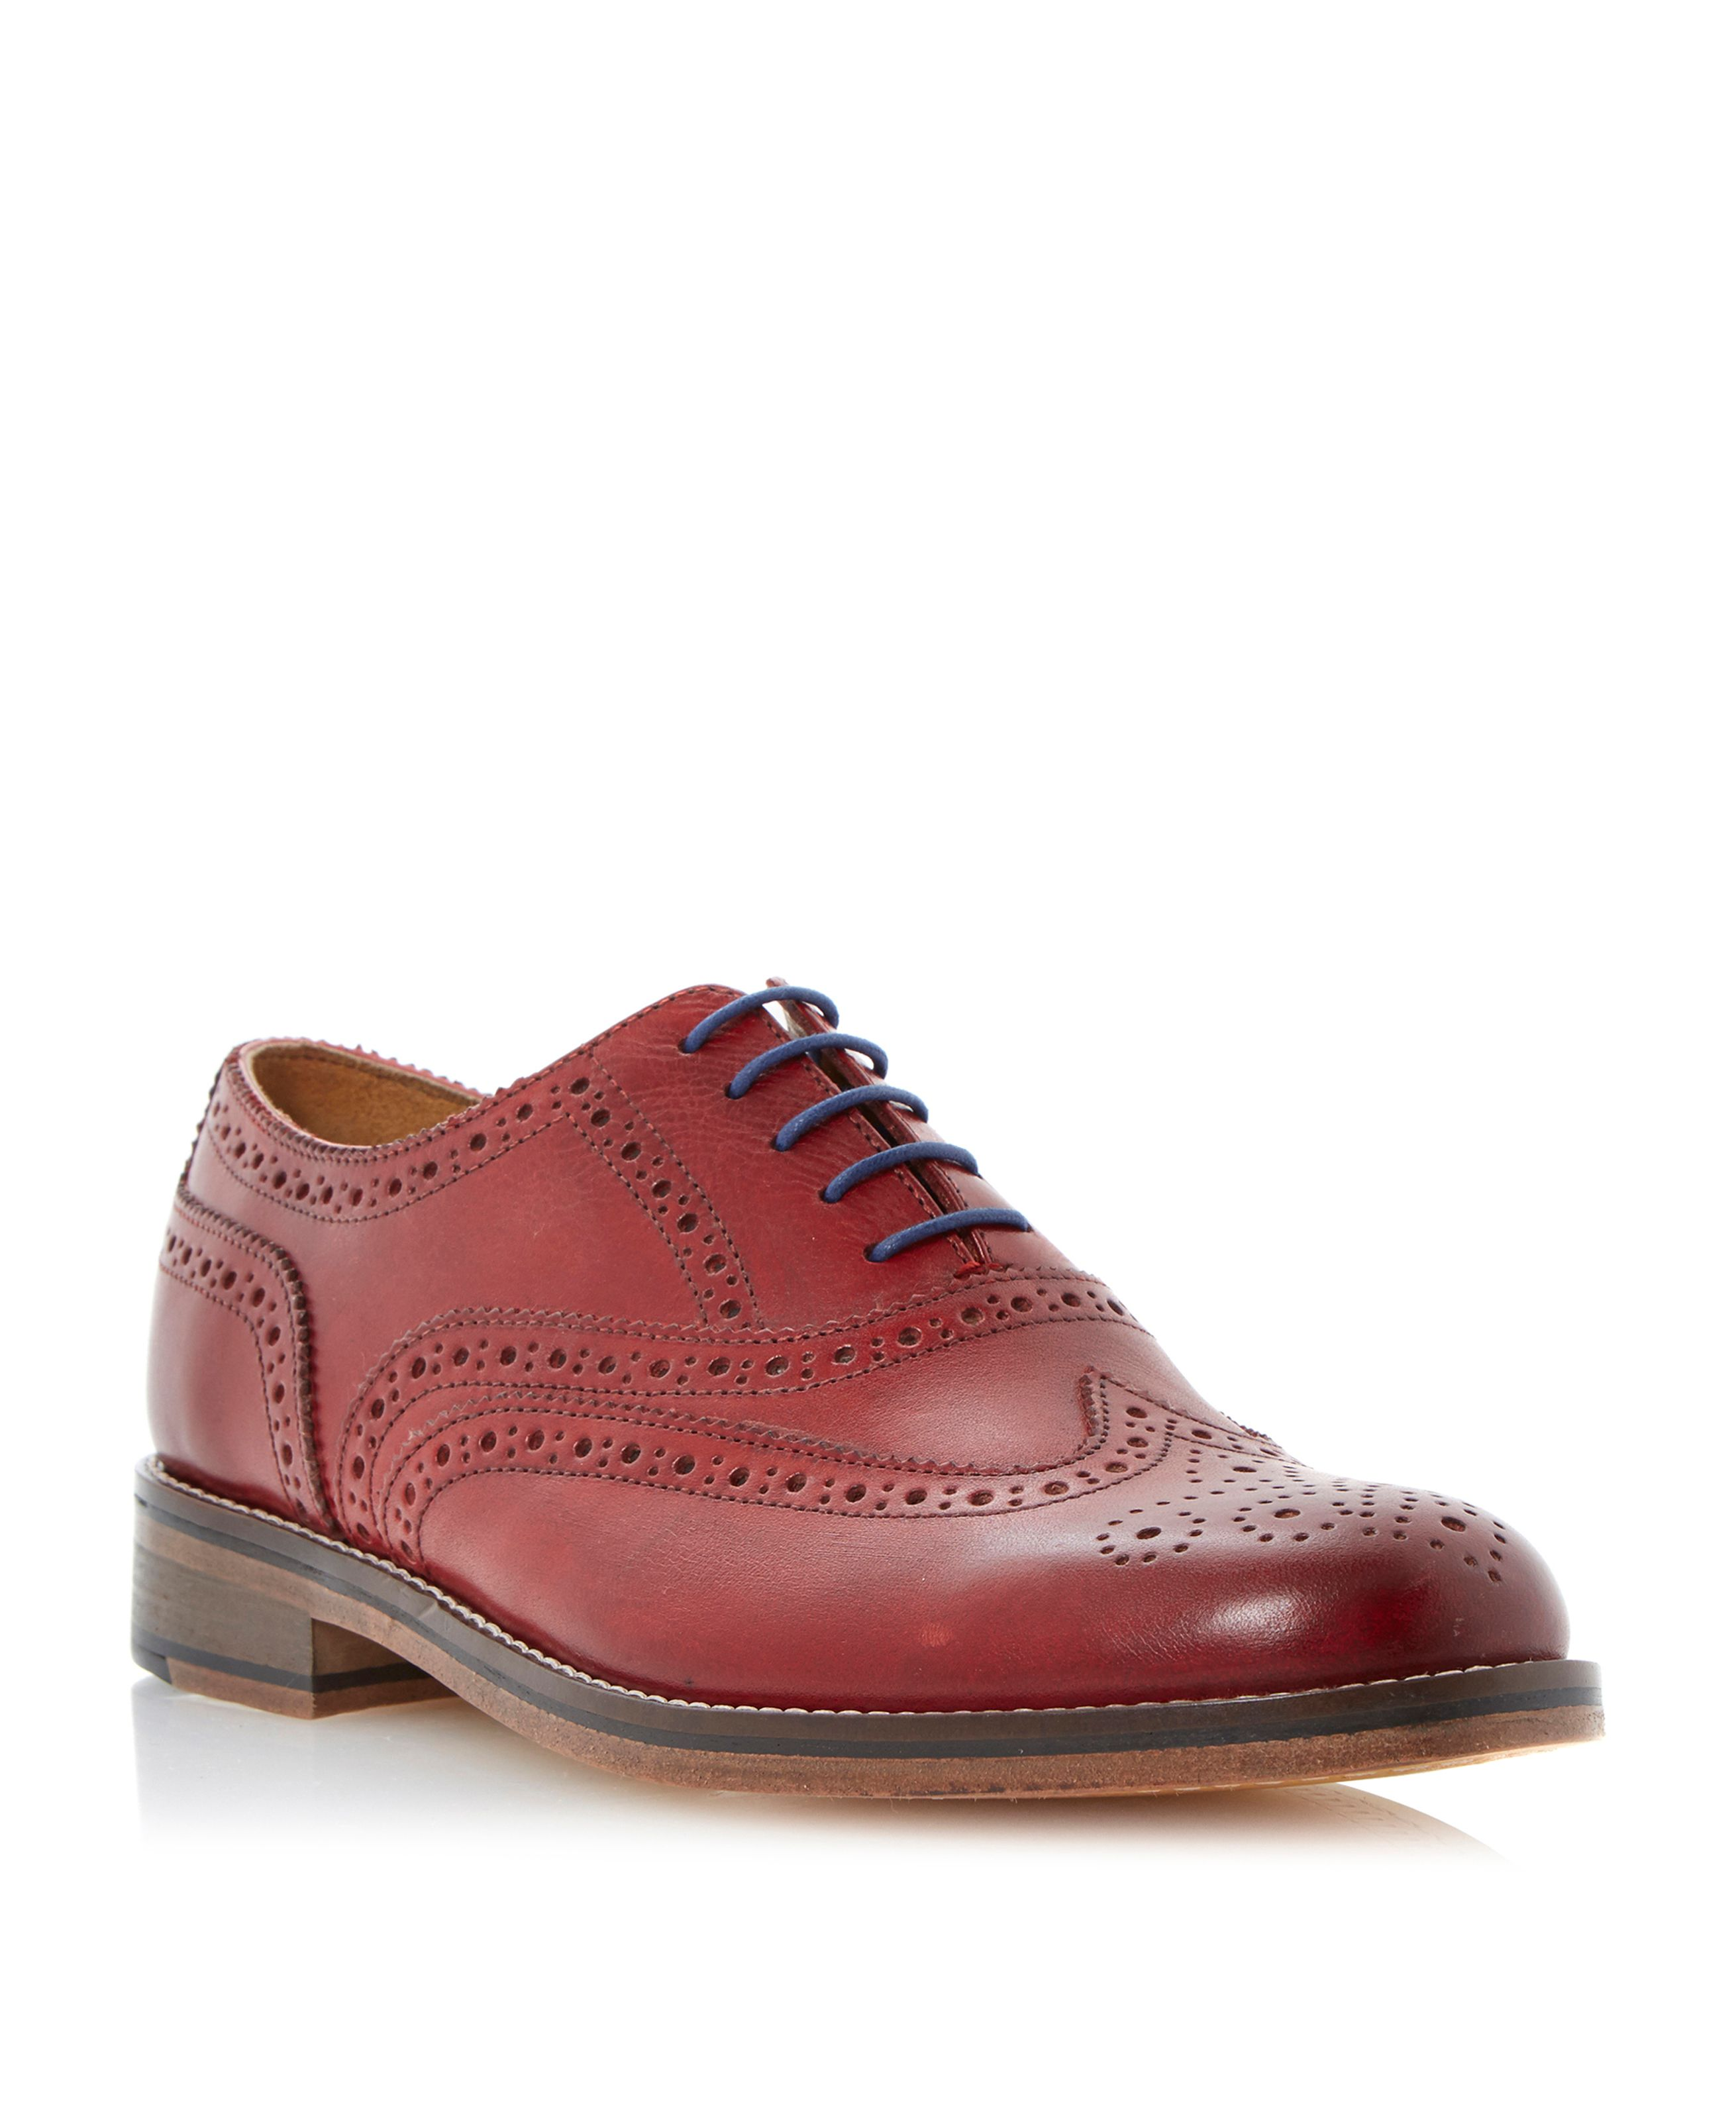 Axton lace up oxford heavy brogues